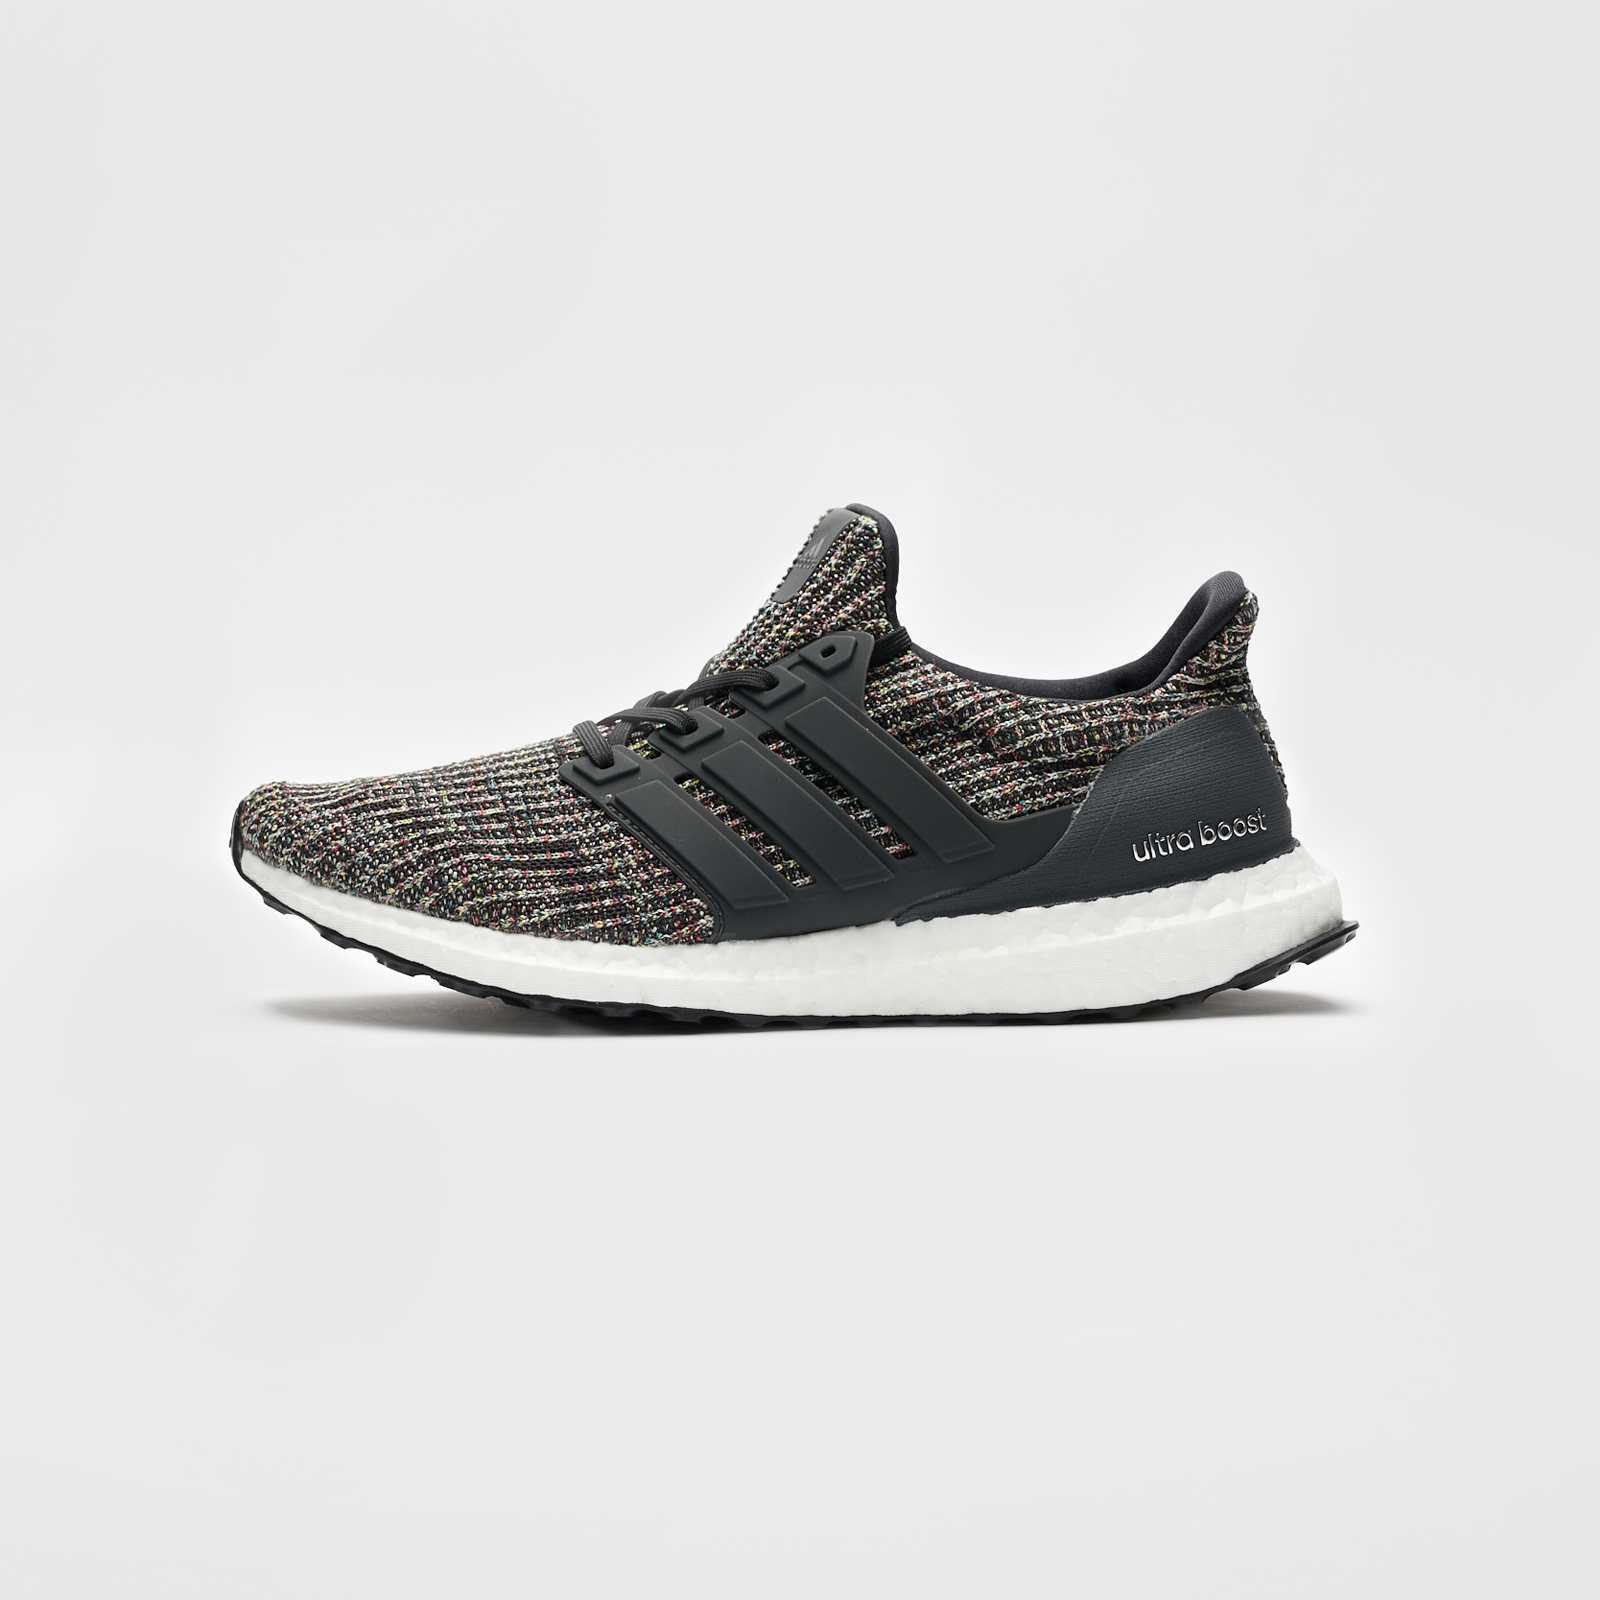 CM8110 Men/'s Brand New Adidas UltraBoost Athletic Fashion Sneakers